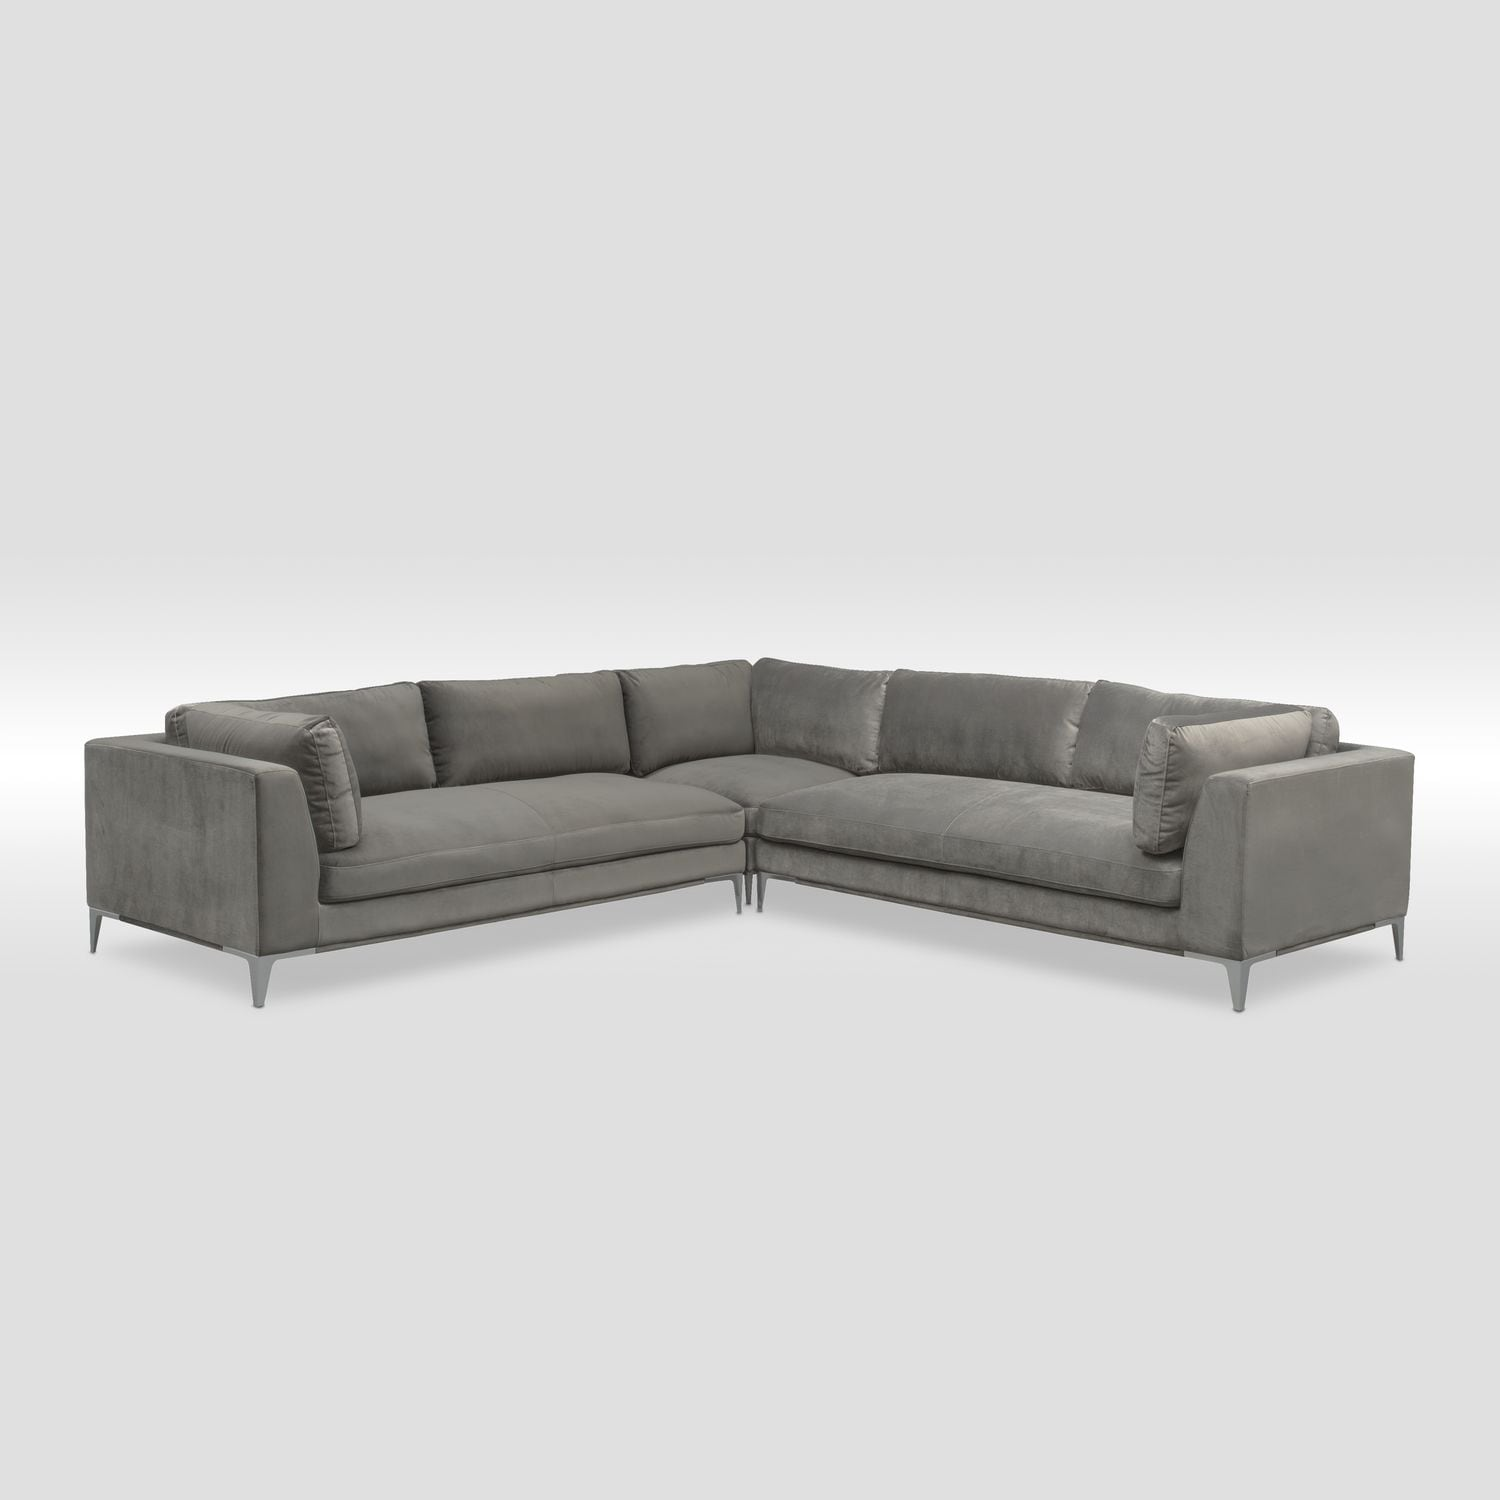 Aaron 3-Piece Sectional - Flannel   Value City Furniture and Mattresses